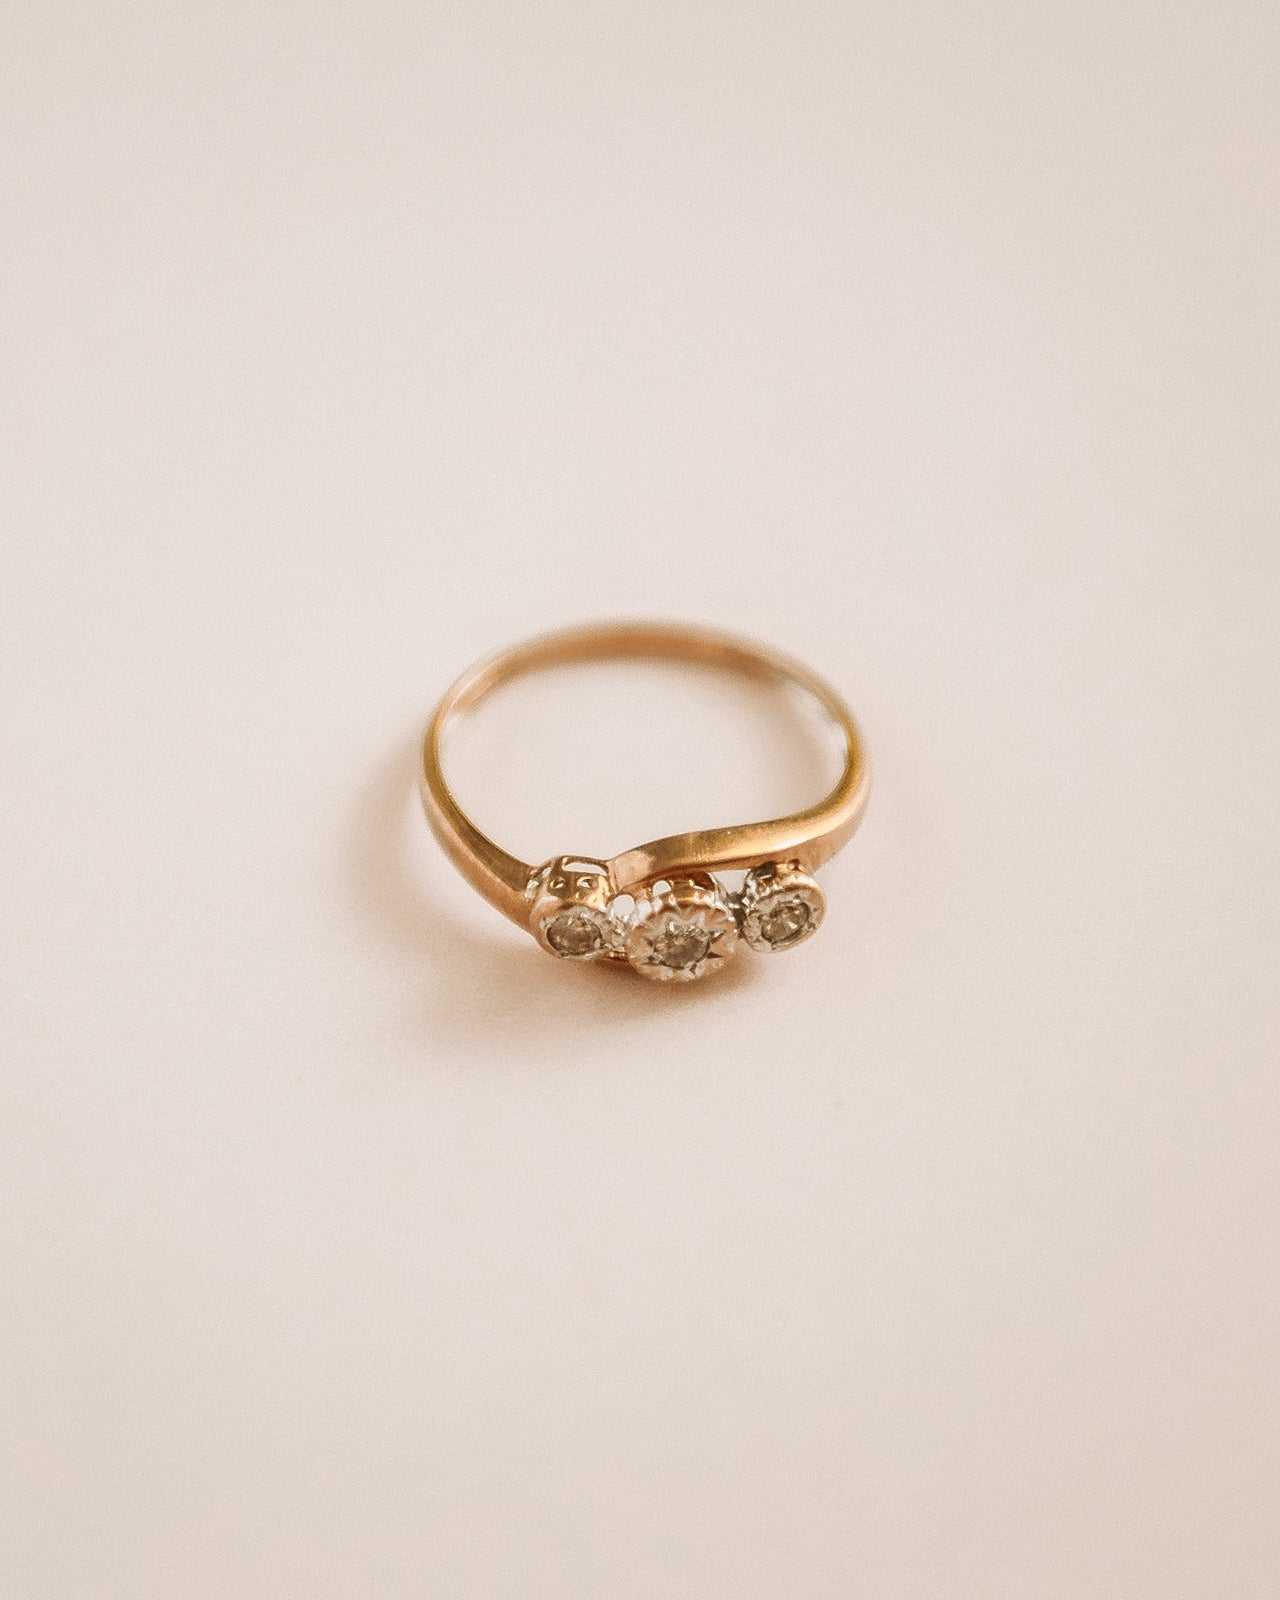 Image of Meredith 9ct Gold Diamond Trilogy Ring